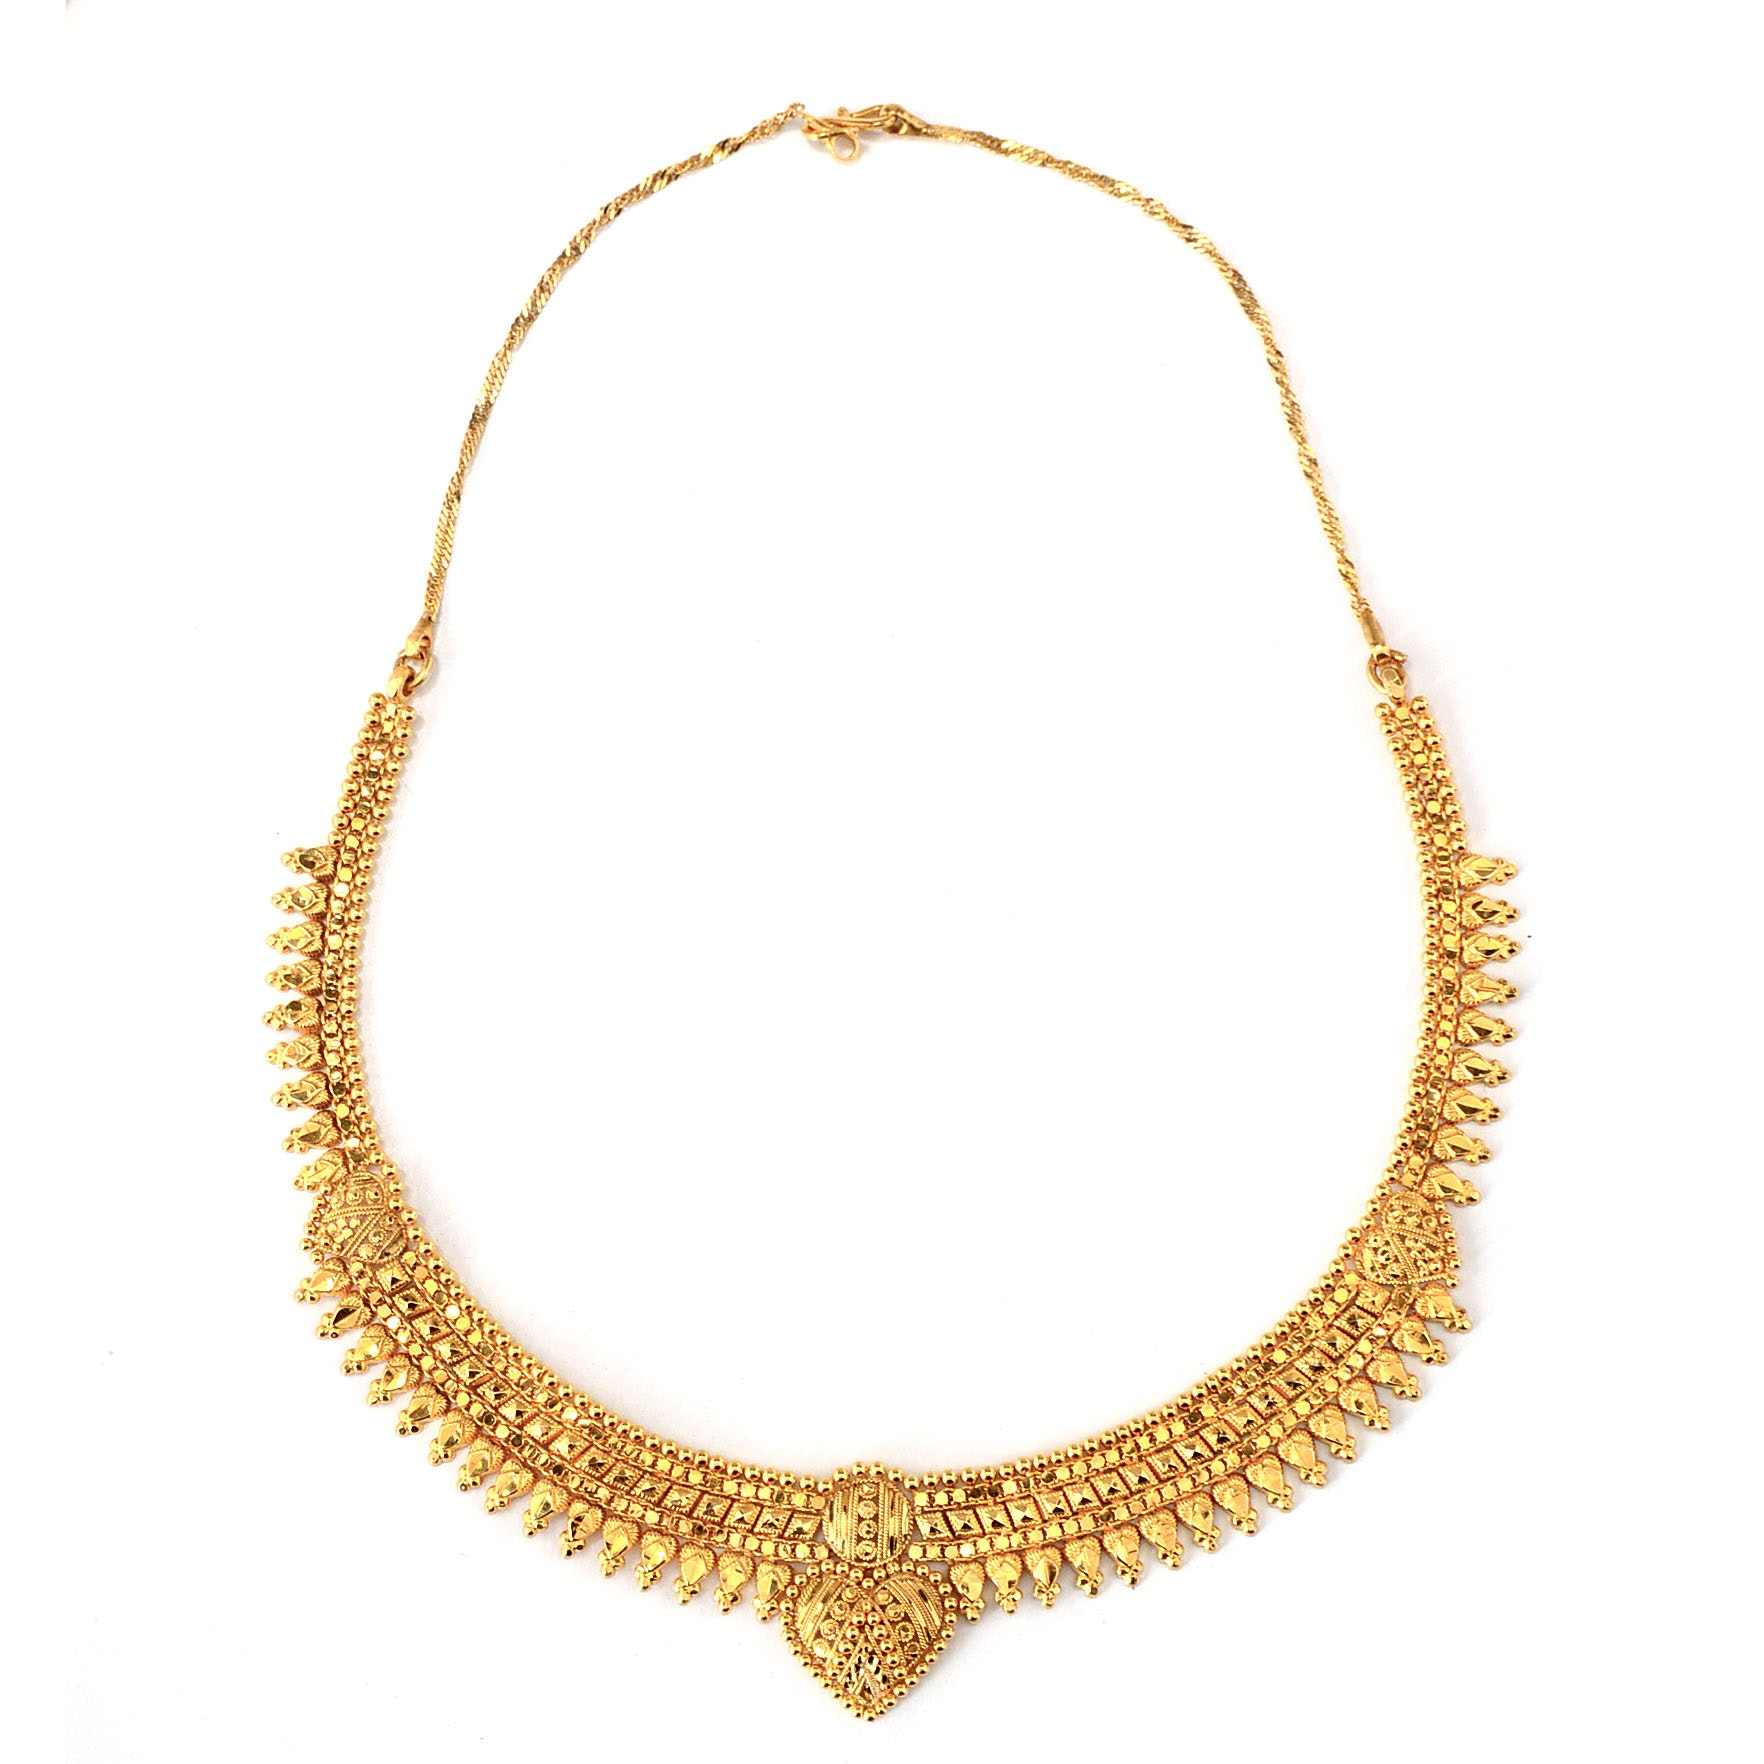 22K Yellow Gold Indian Collar Link Chain Necklace with Hearts